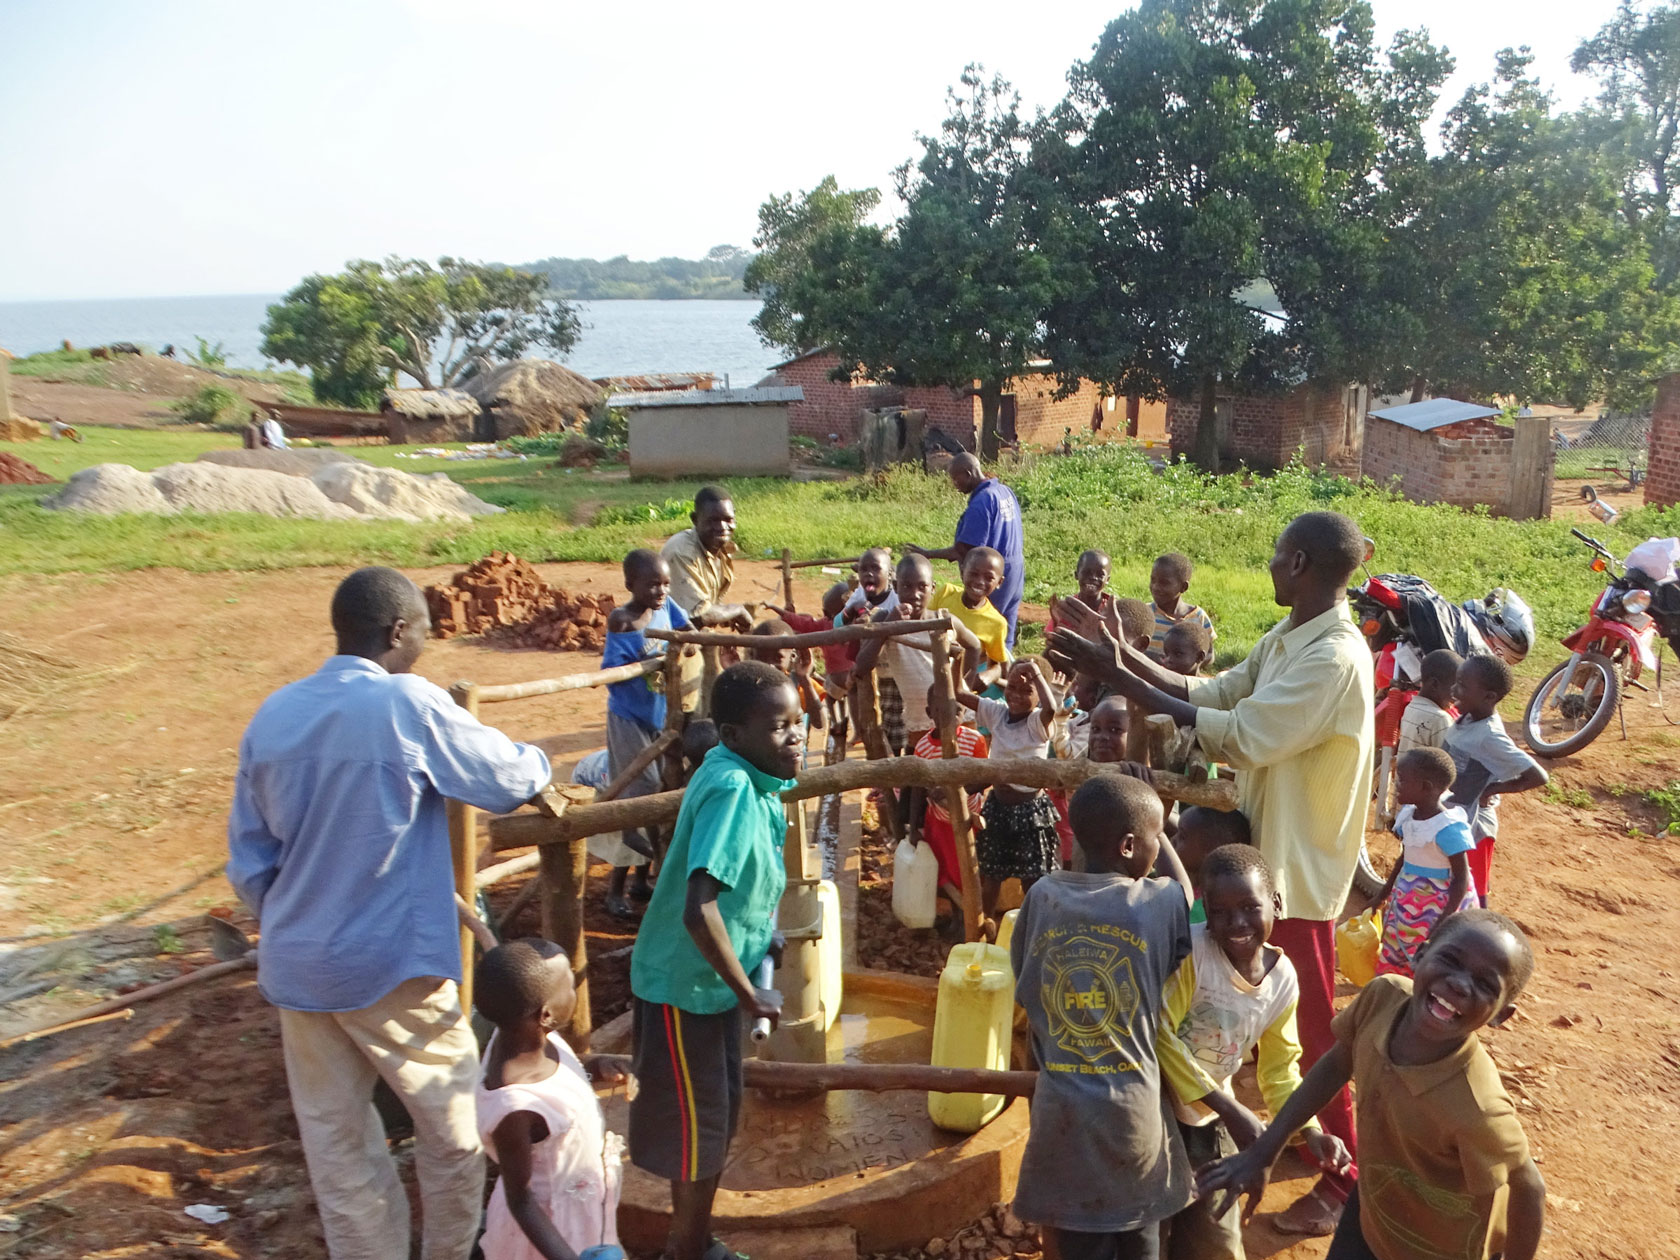 Many people gathered at a well to fetch water in Nangoma